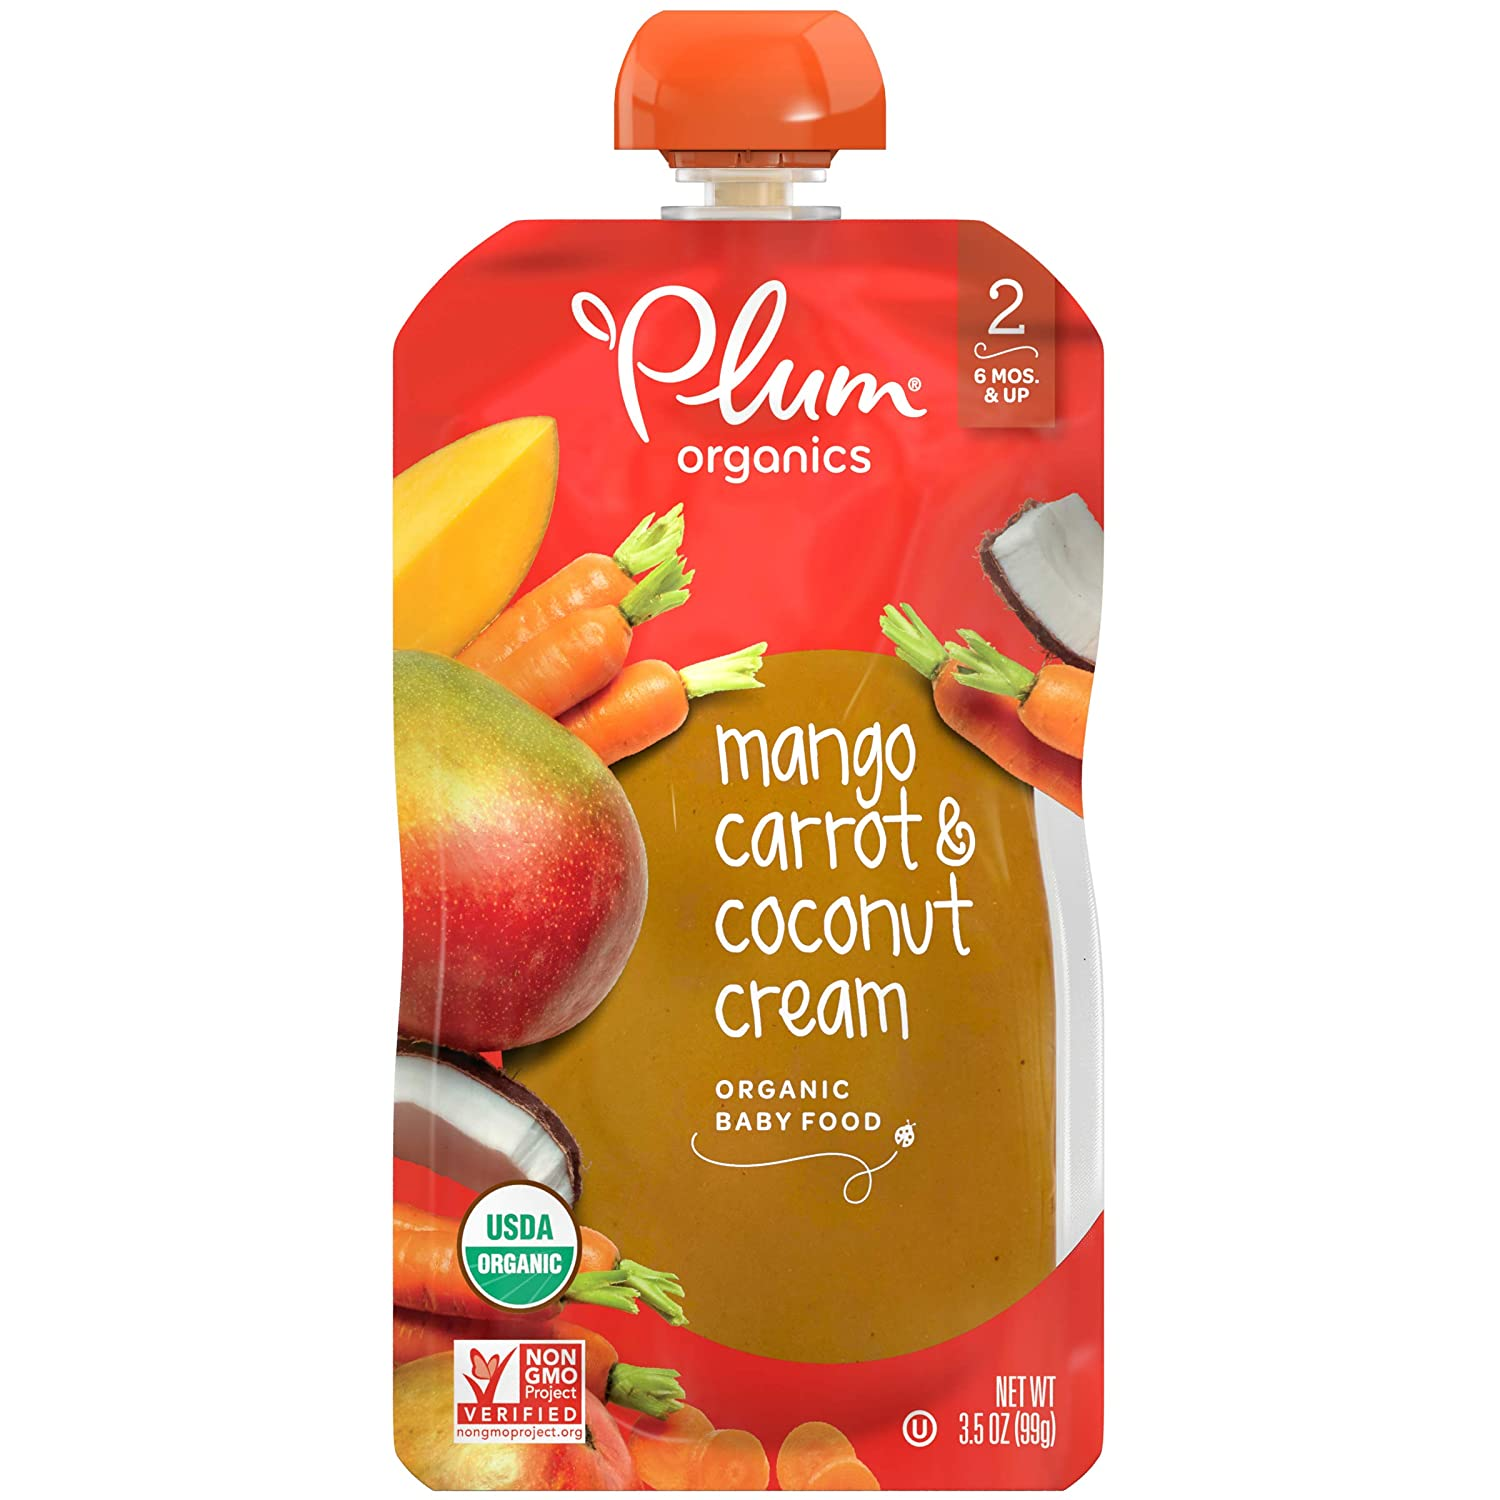 Plum Organics Stage 2, Organic Baby Food, Mango, Carrot & Coconut Cream, 3.5 Ounce Pouch (Pack of 12) (Packaging May Vary)